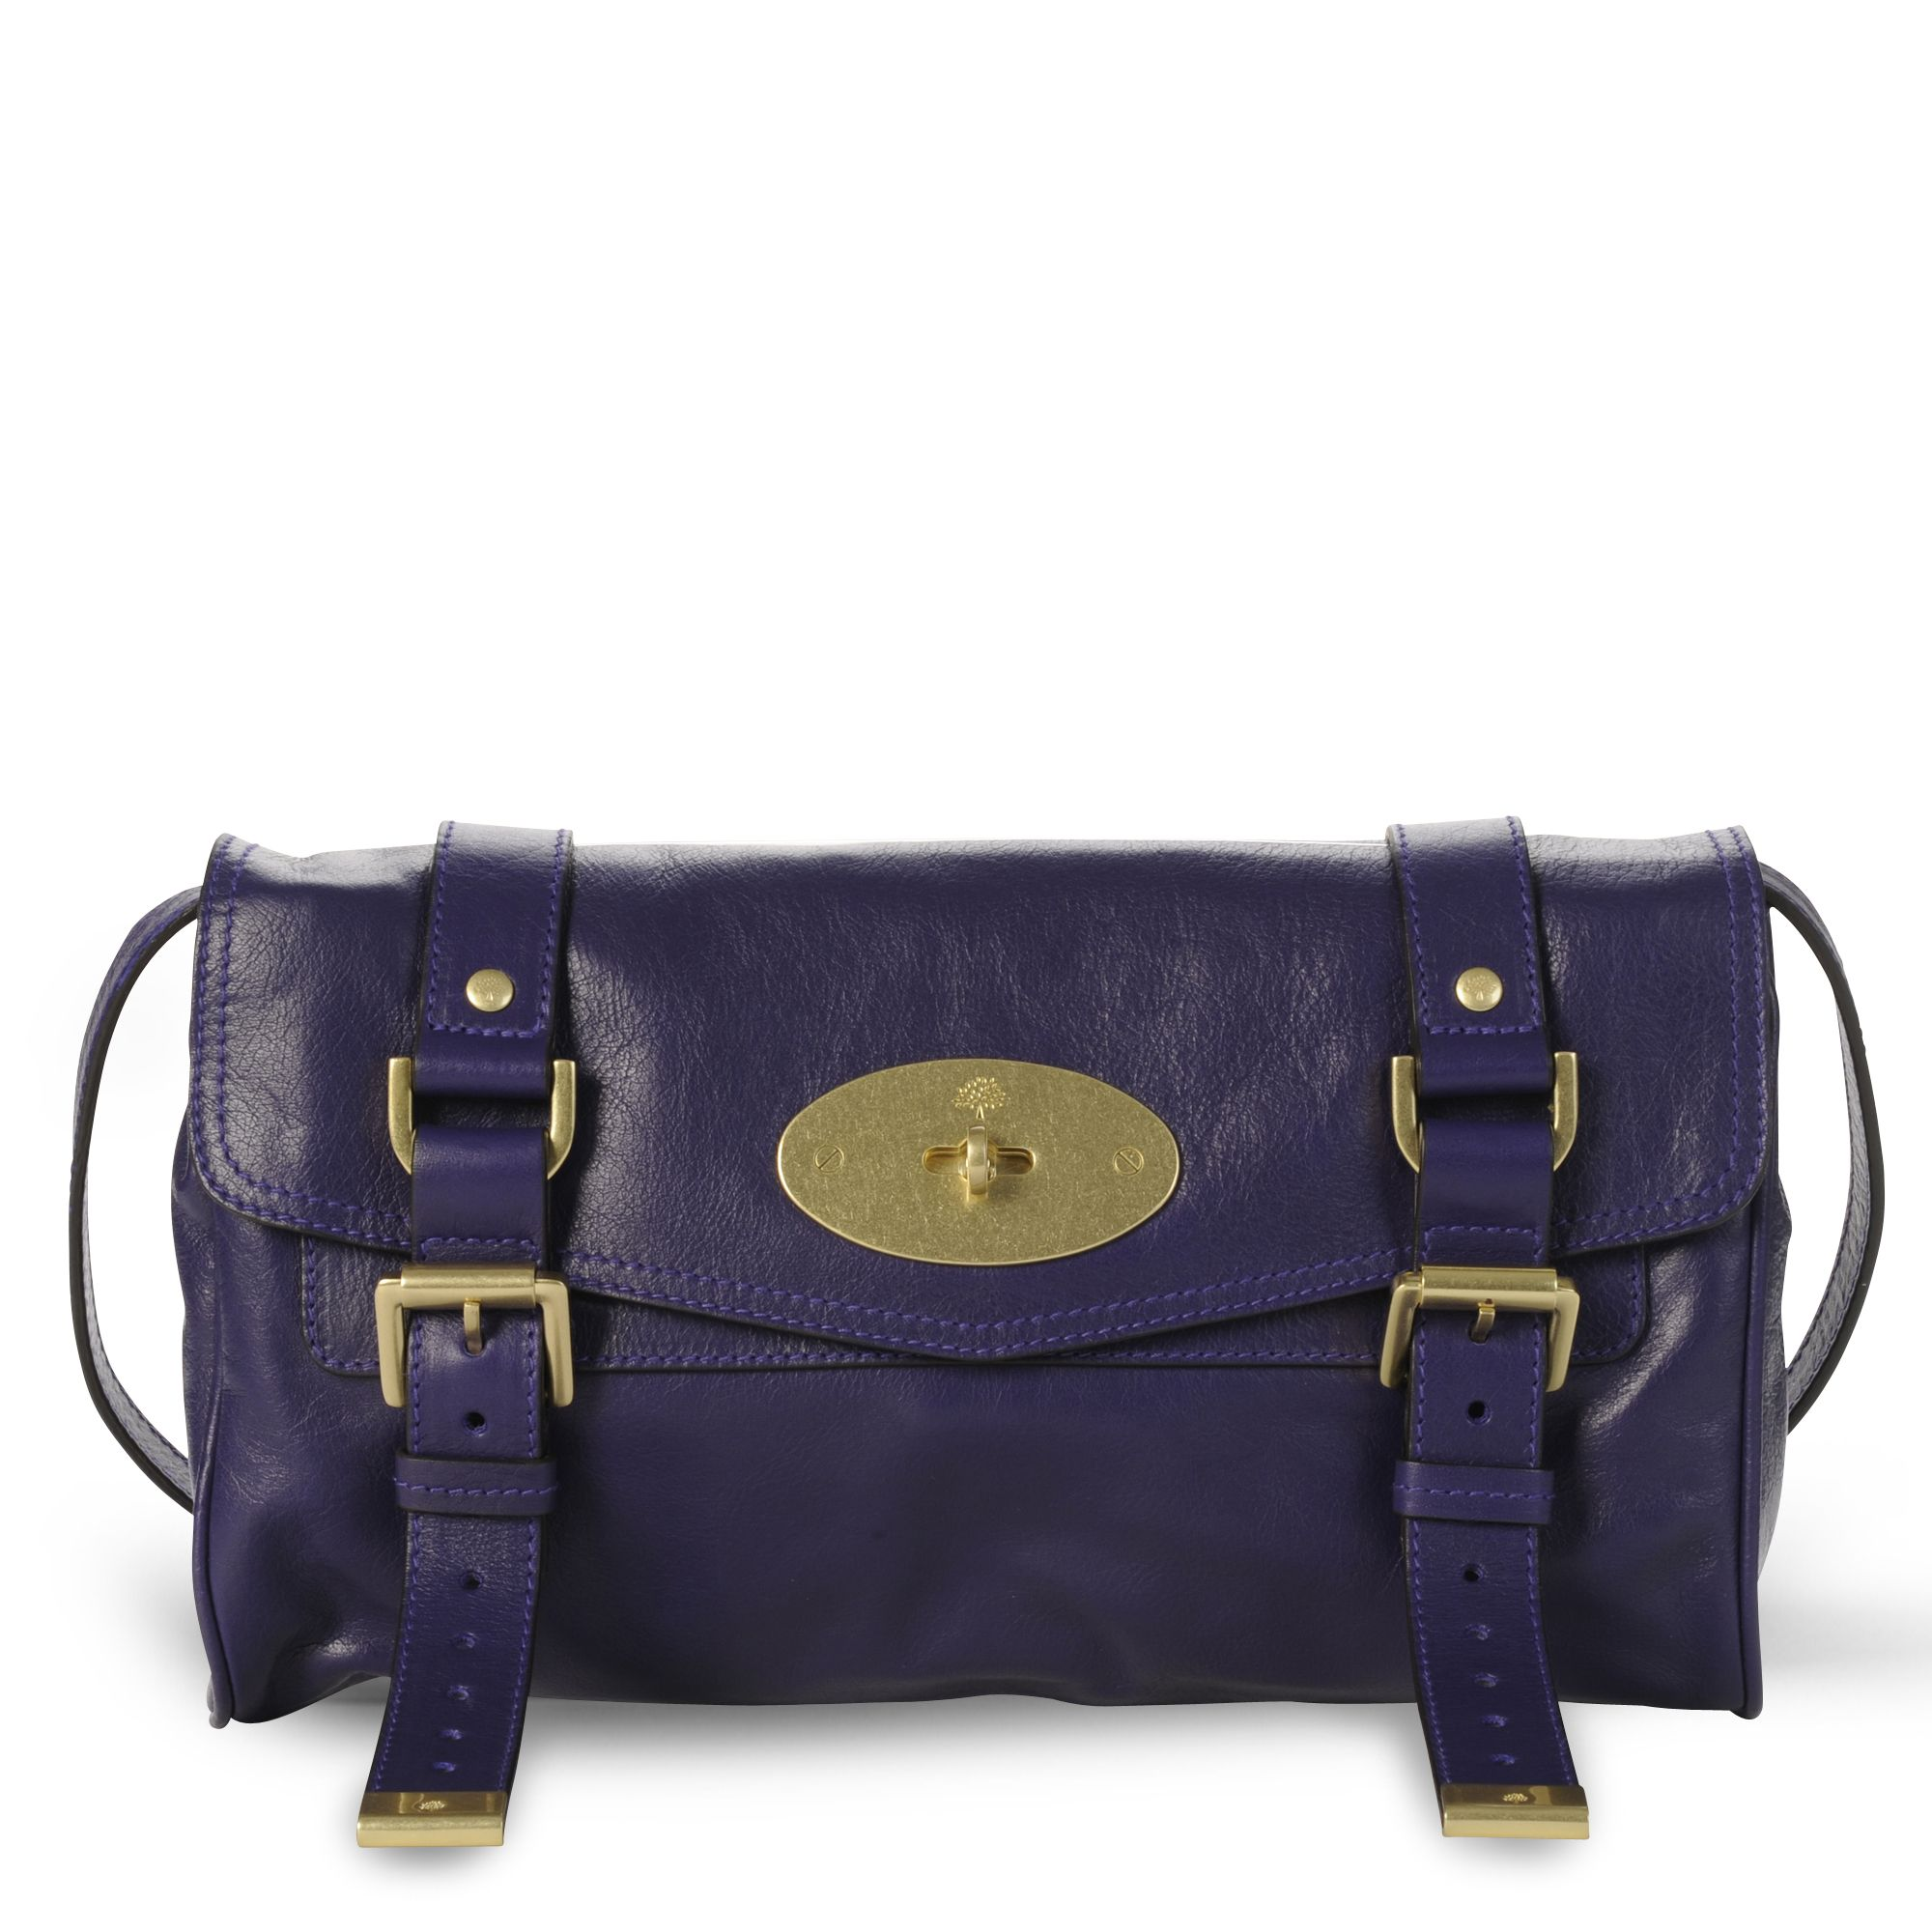 ... low price mulberry alexa clutch bag in purple lyst cac39 d23be f1e738d126cea